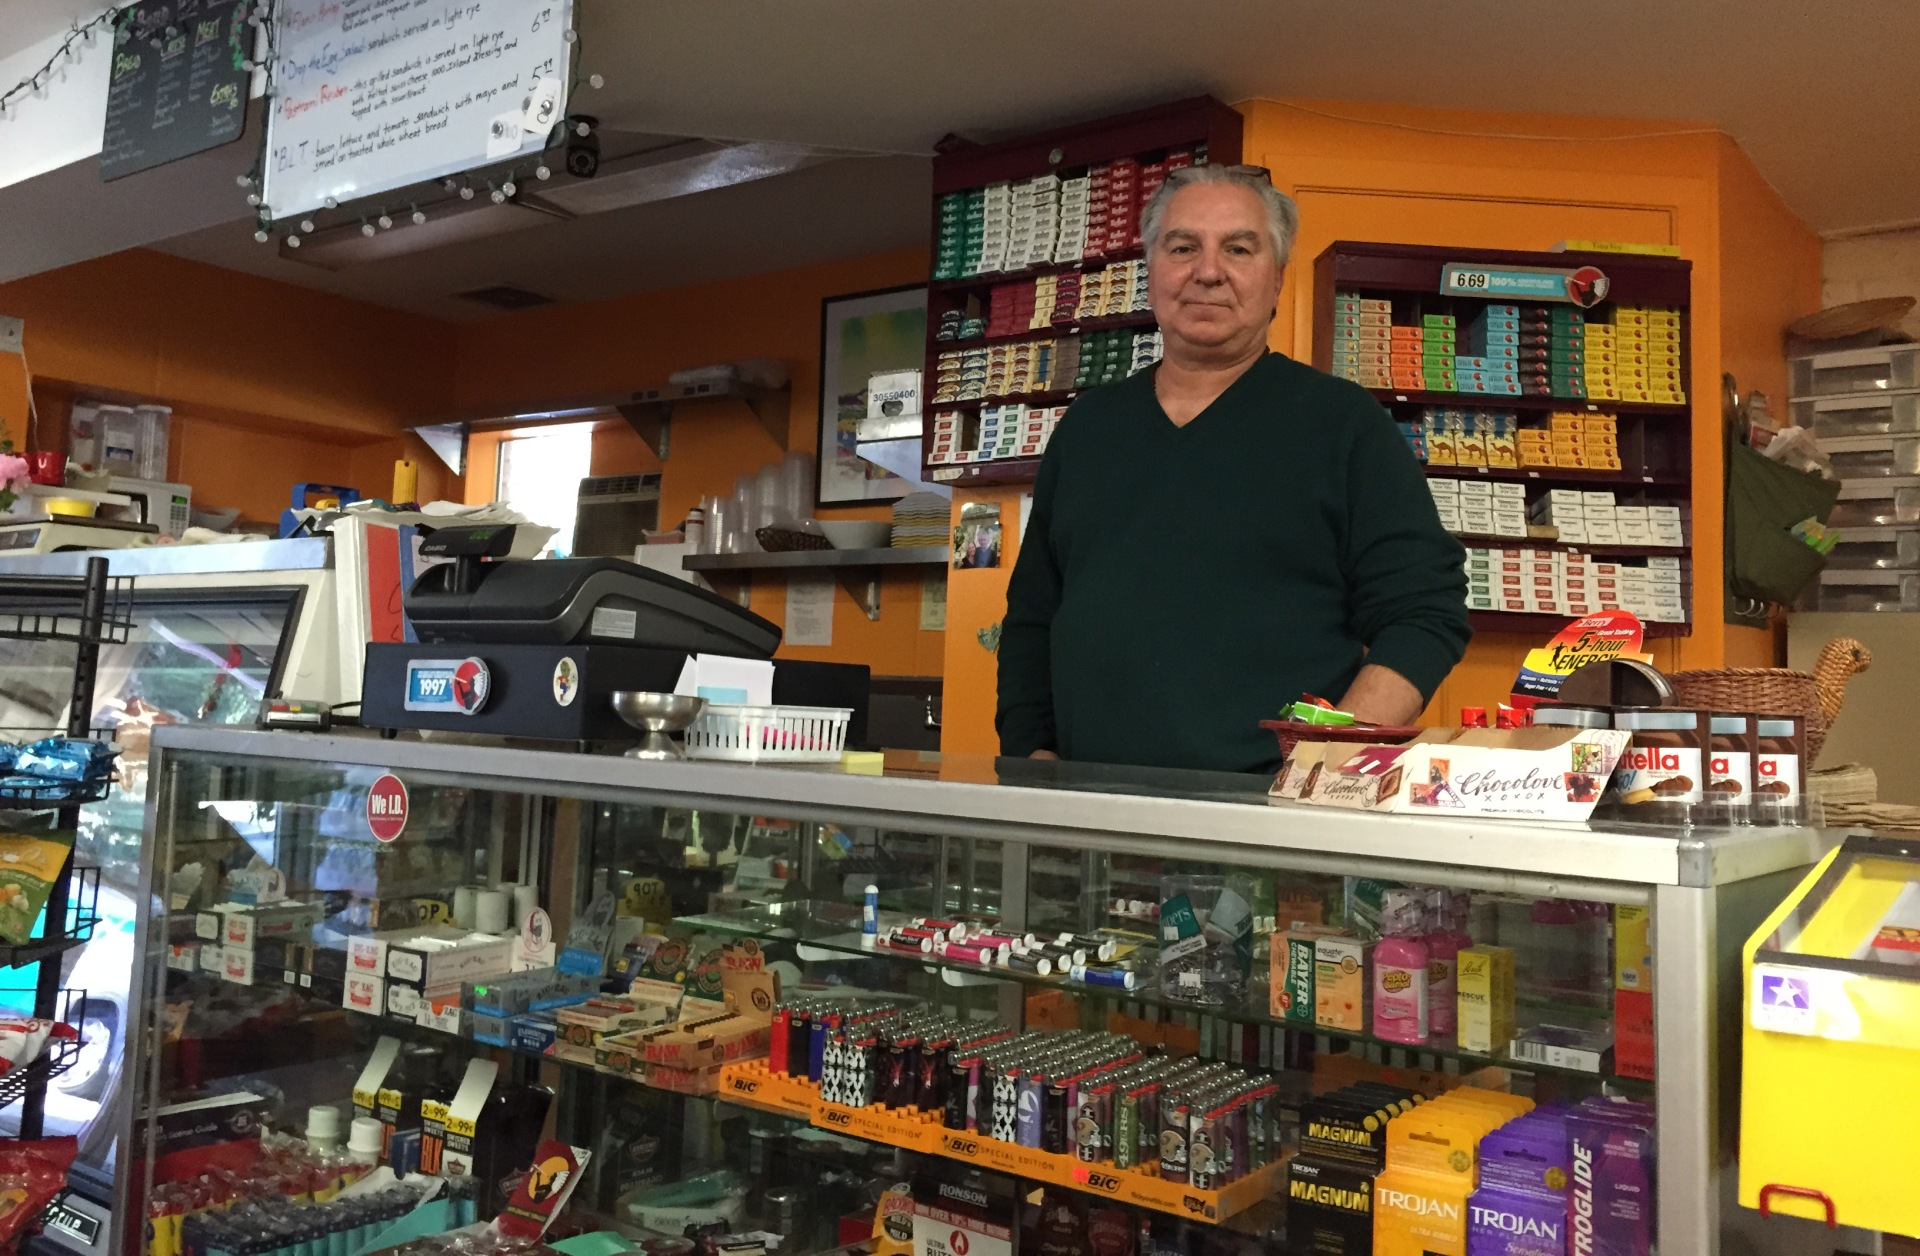 Dean Nicolaides stands at the counter of Dino's Loch Lomond Market on Sept. 29, 2015. The store had yet to reopen following the Valley Fire that destroyed Nicolaides' home along with about 1,300 others.